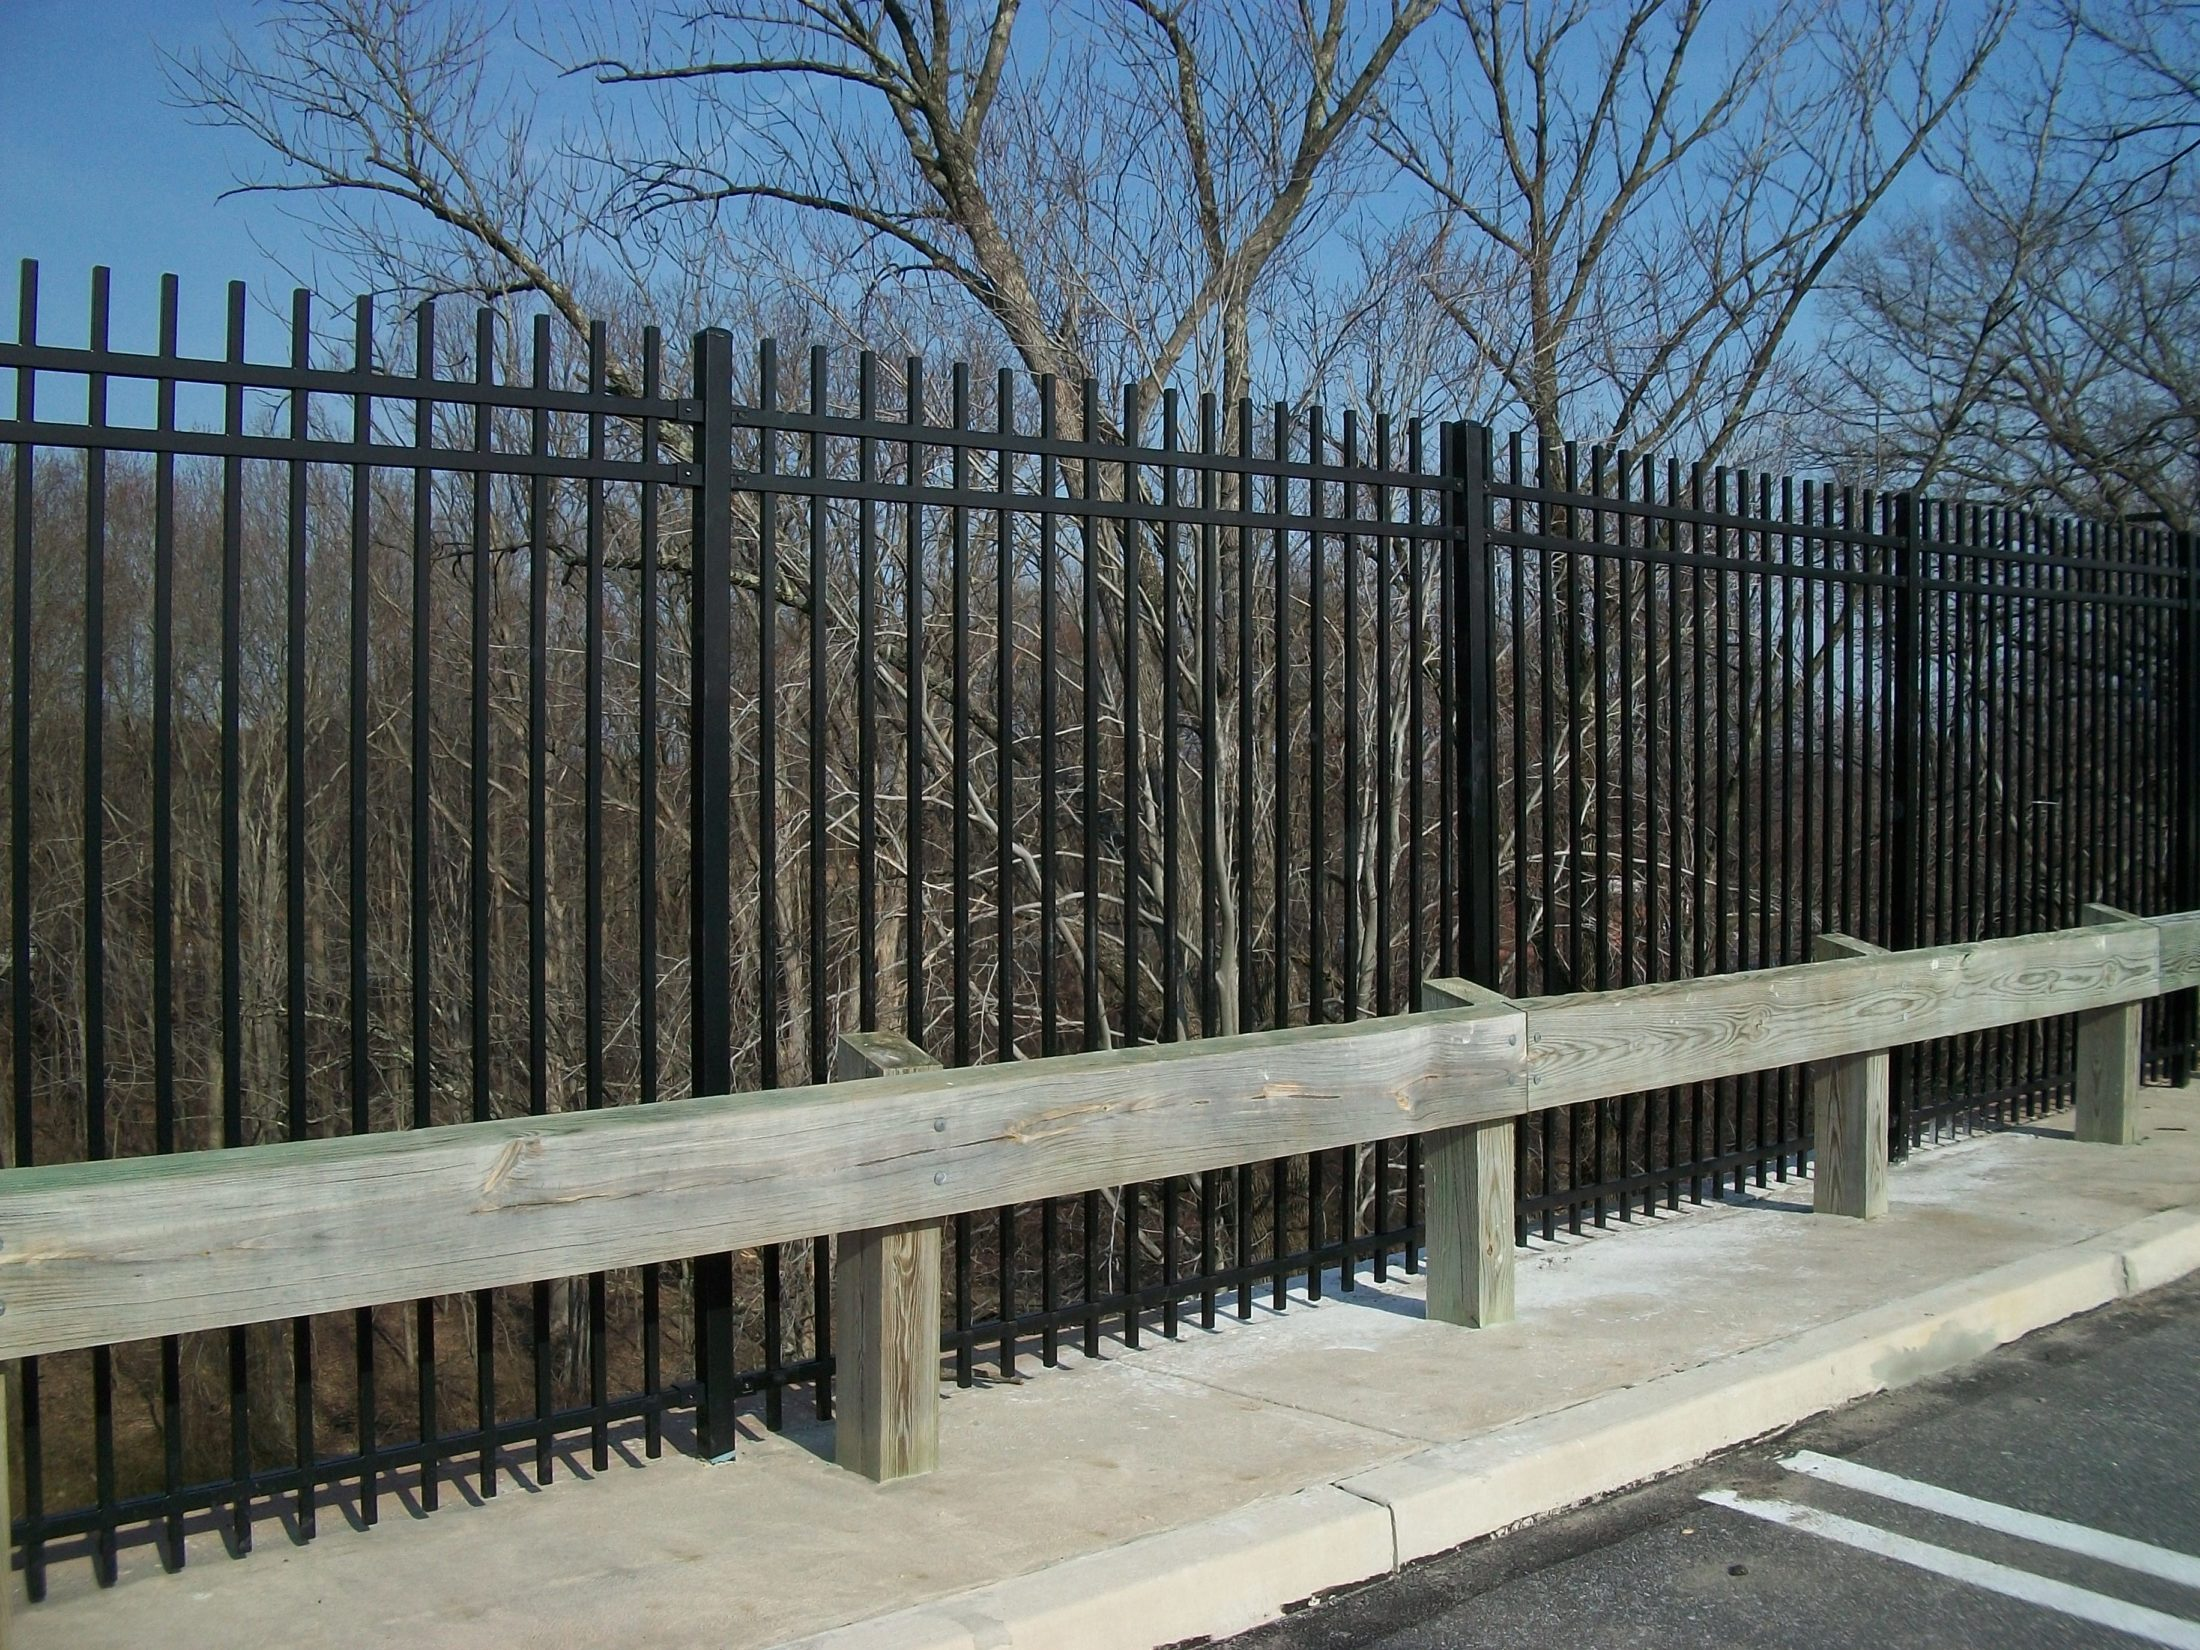 steel fence behind guard rail